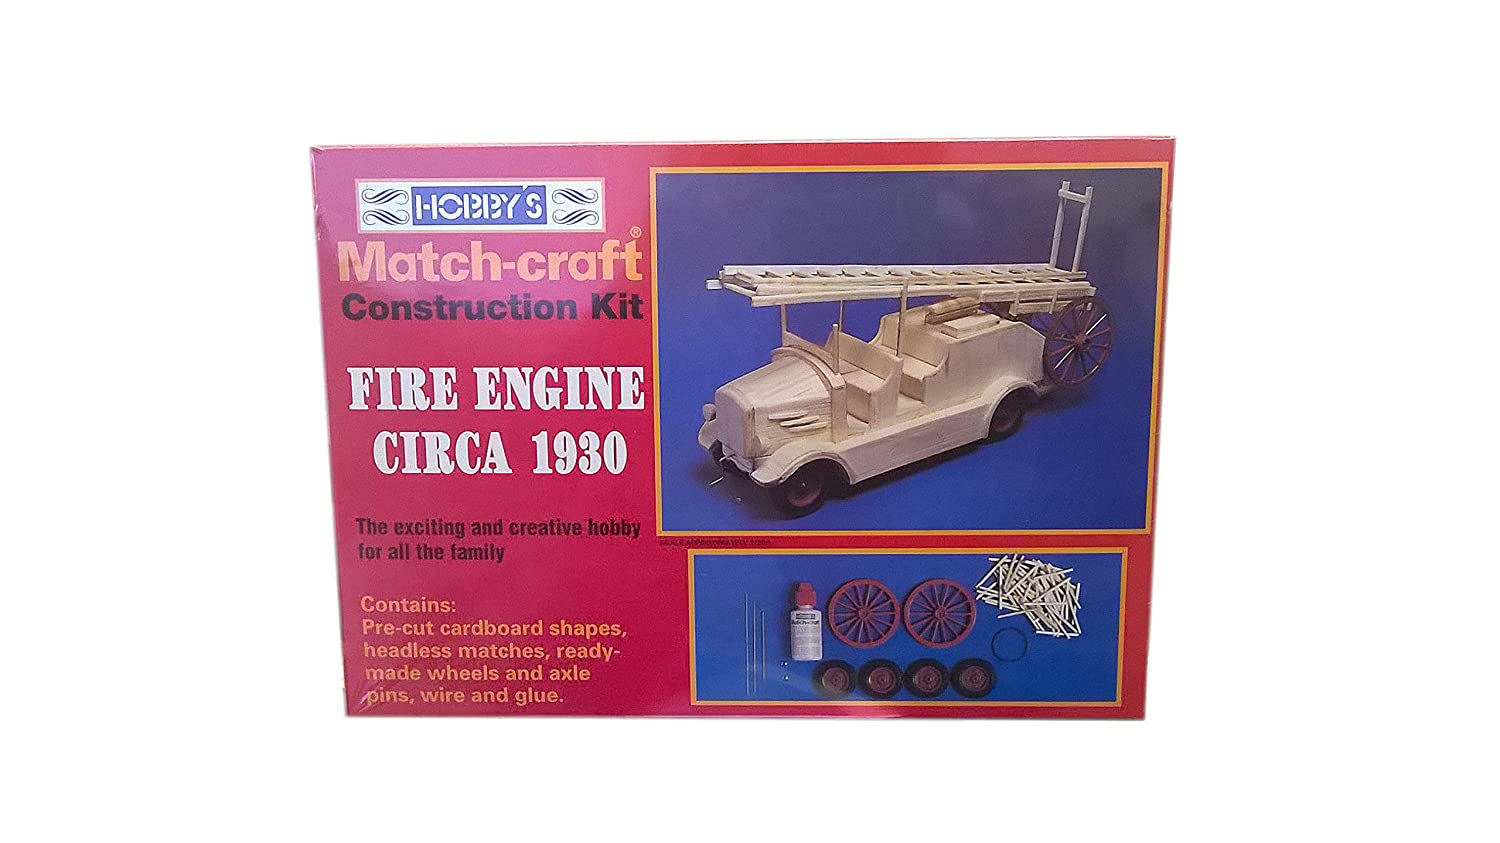 MATCHSTICK MODEL CONSTRUCTION KIT OF A FIRE ENGINE & LADDER (CIRCA 1930) INCLUDES GLUE & INSTRUCTIONS by Matchcraft 11541